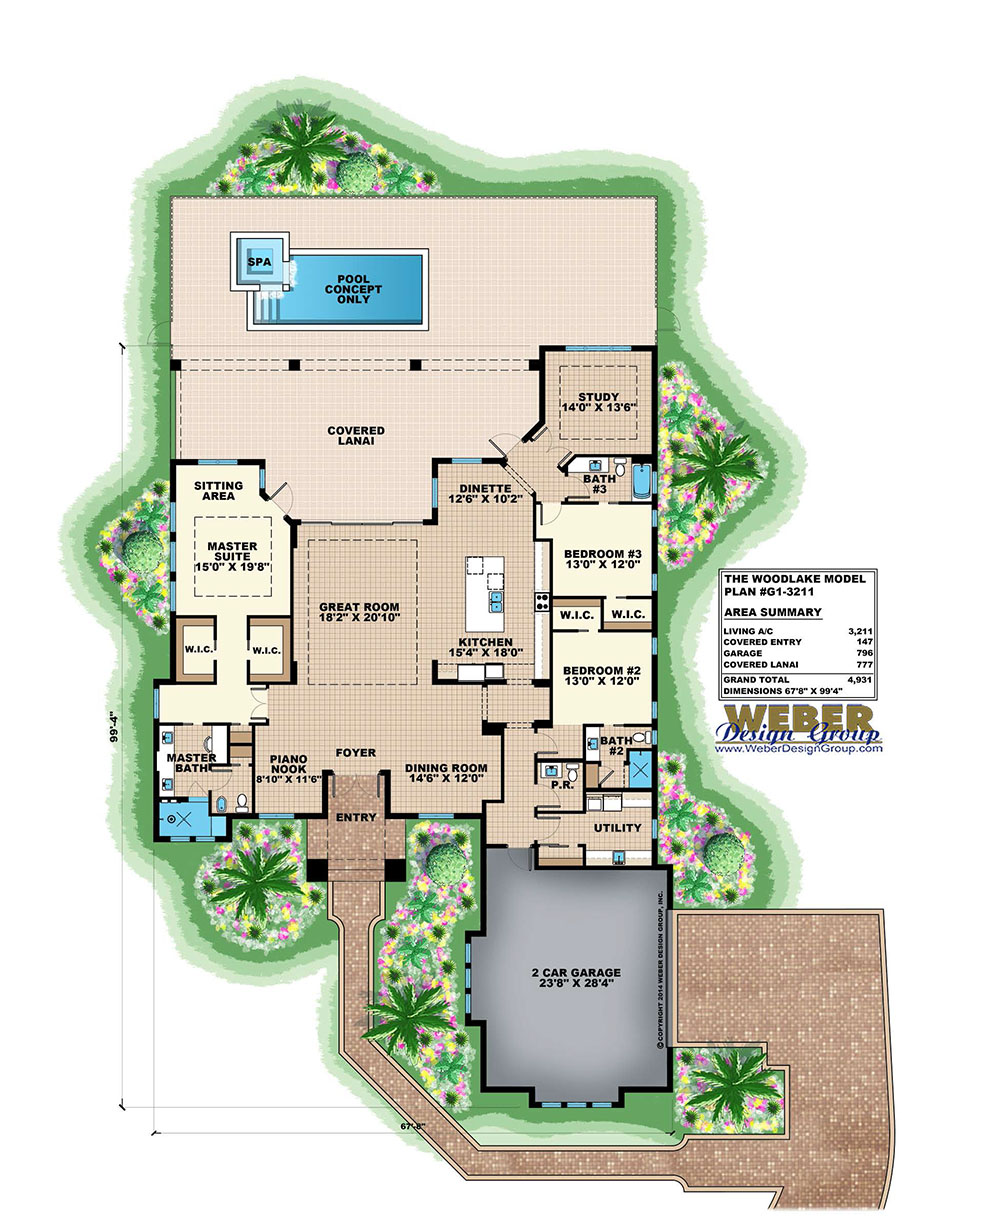 Villa veletta house plan weber design group for Weber design